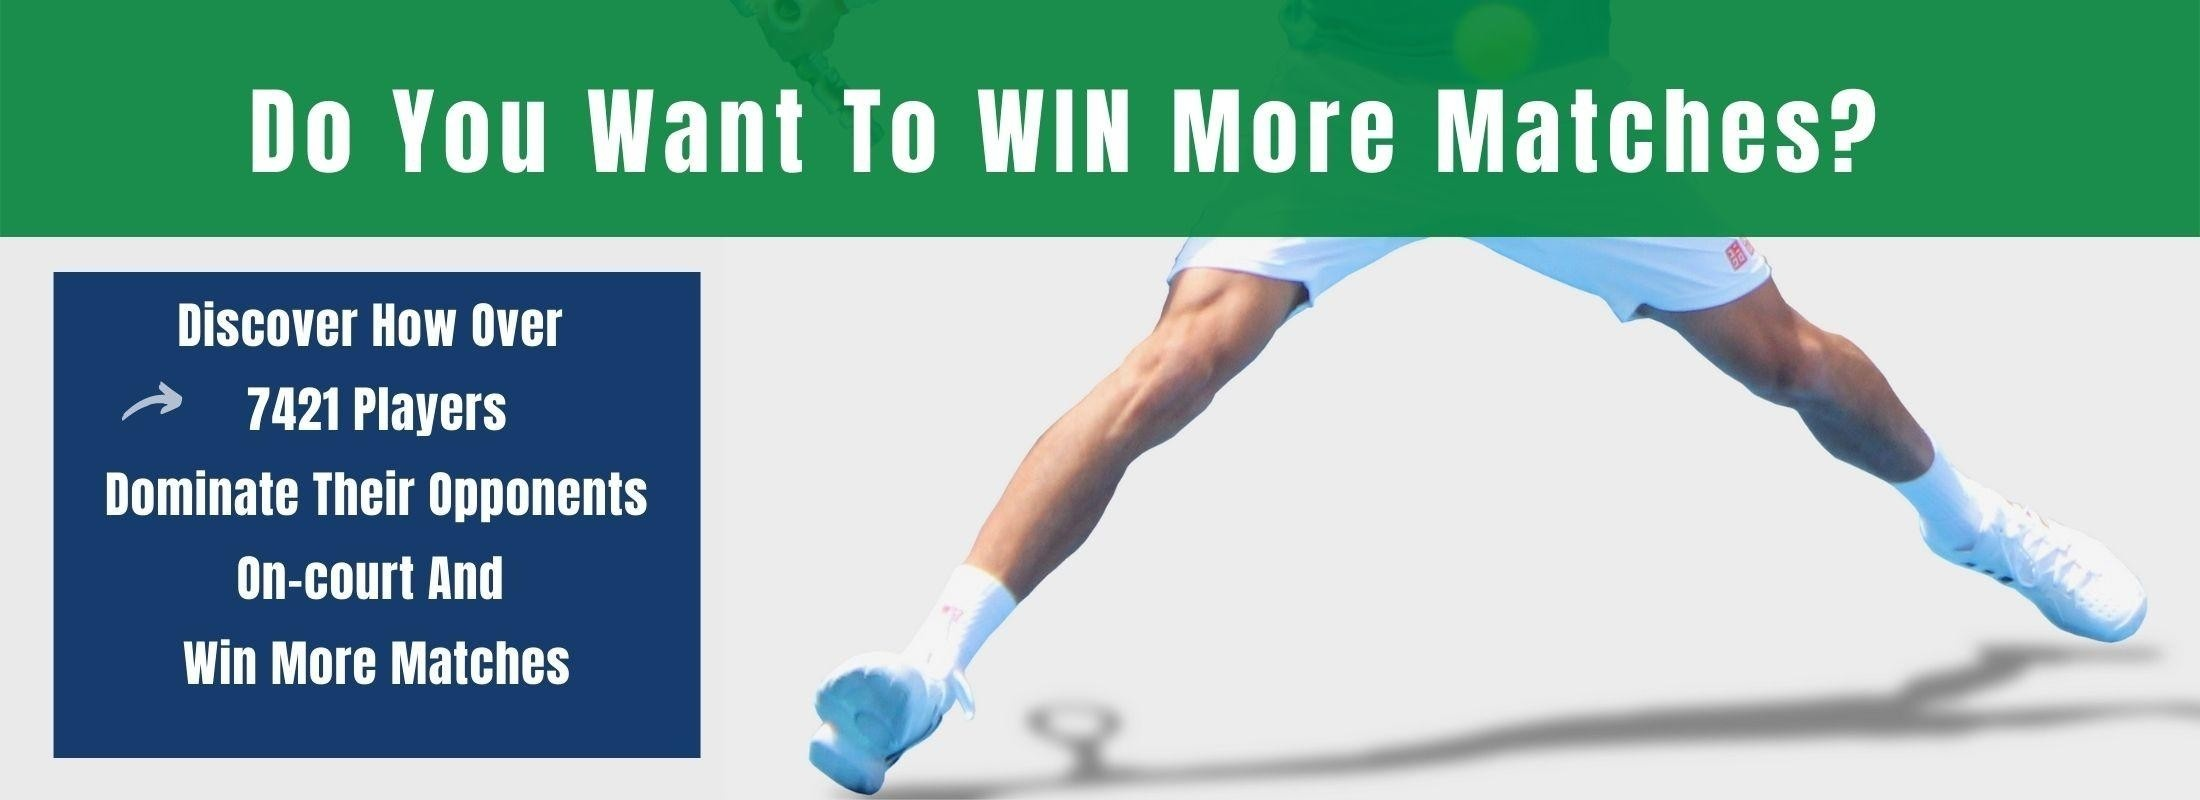 tennis-speed-agility-and-reaction